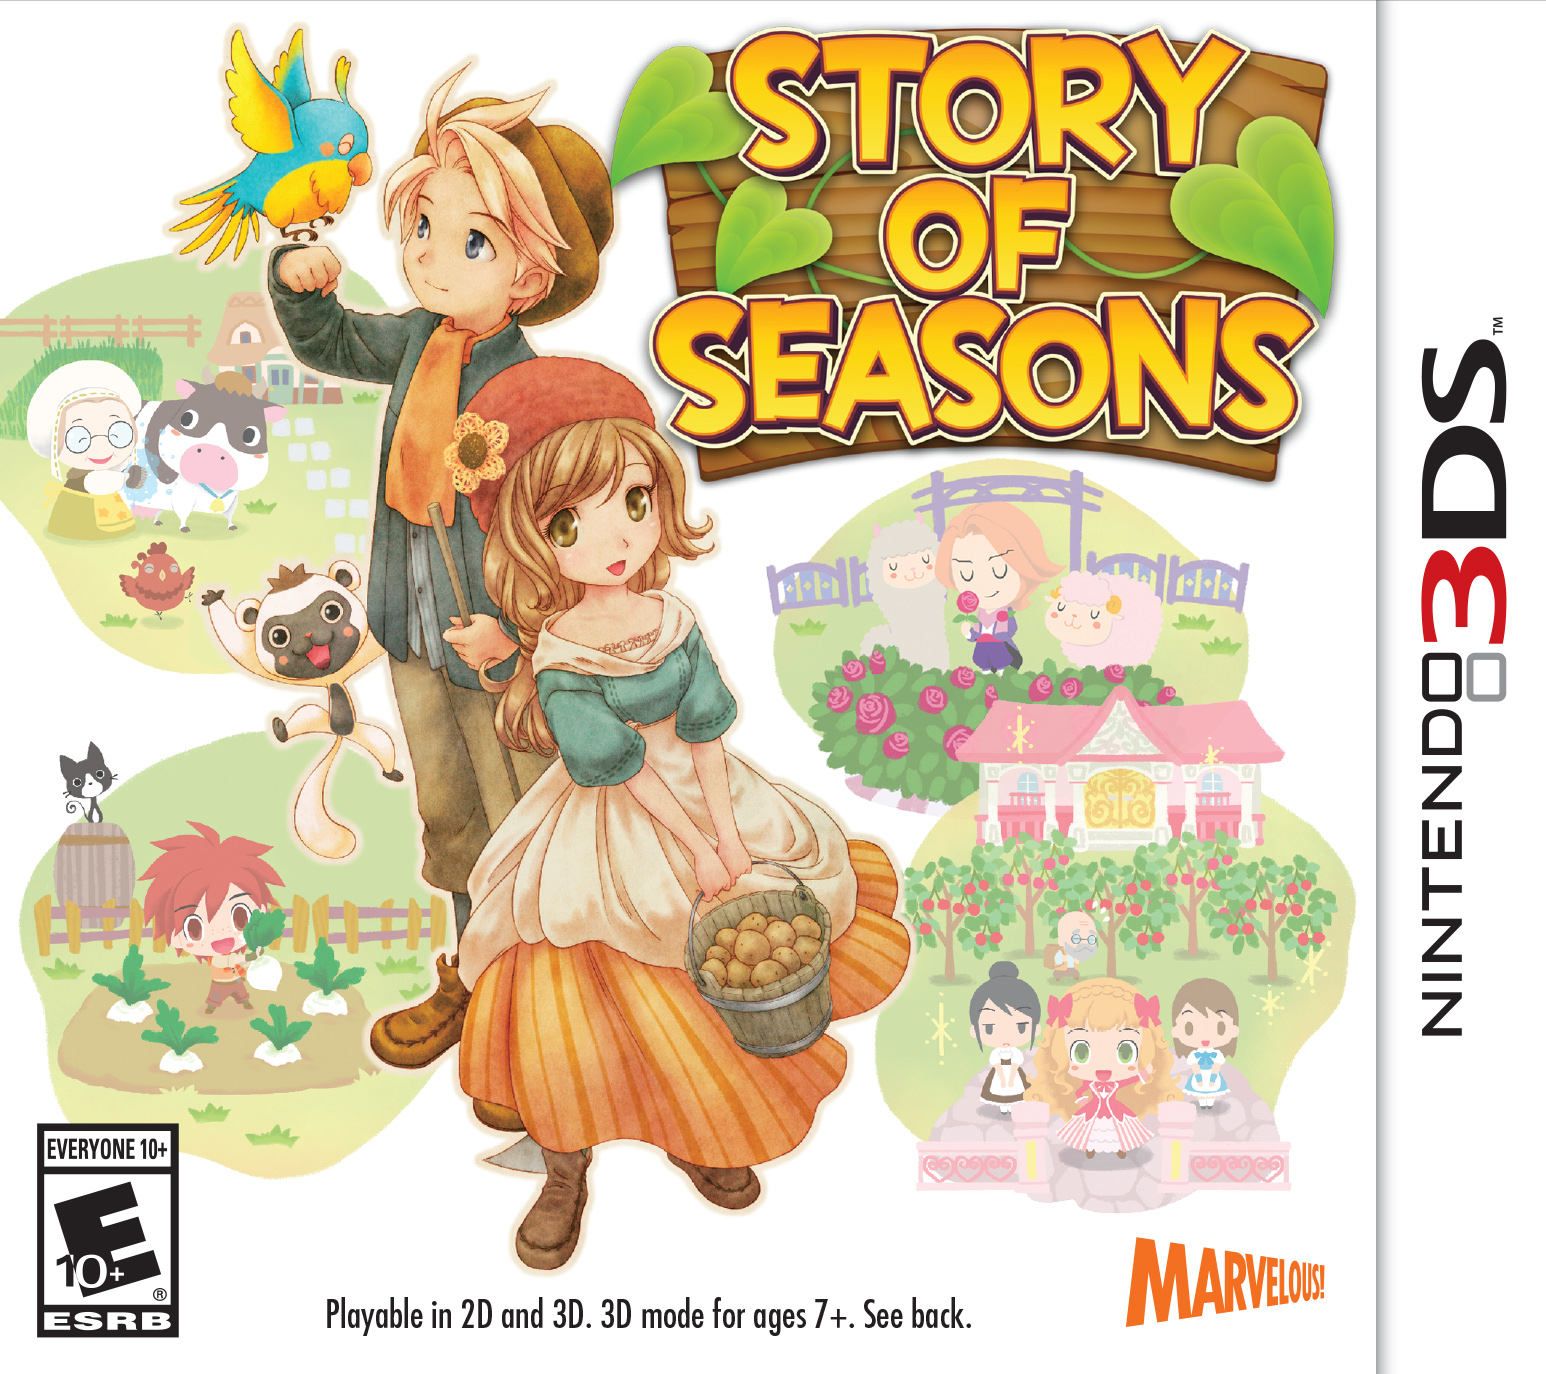 http://vignette4.wikia.nocookie.net/hmwikia/images/7/79/Story-of-Seasons-cover.jpg/revision/latest?cb=20150403213105